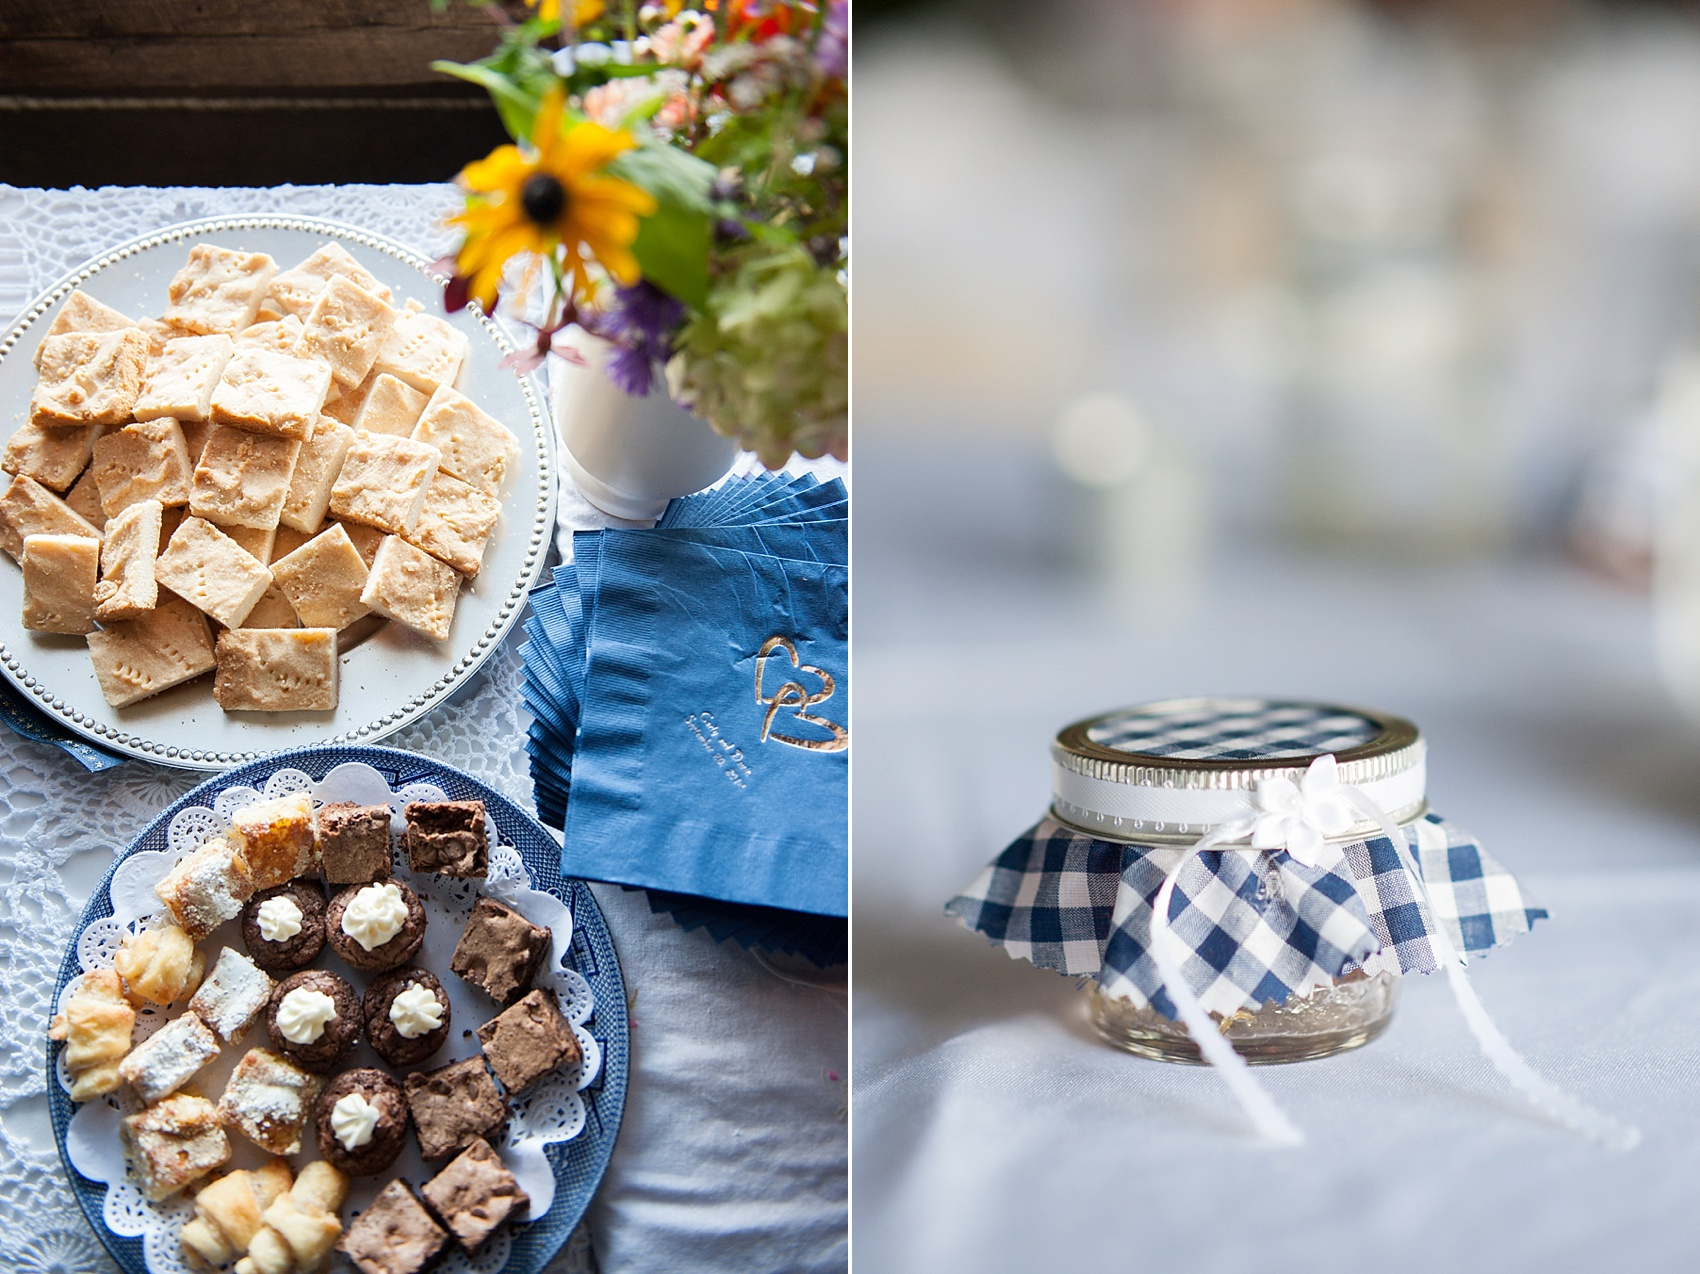 Rustic Berkshires camp wedding with homemade desserts and jam. Photos by Massachusetts wedding photographer, Mikkel Paige Photography.